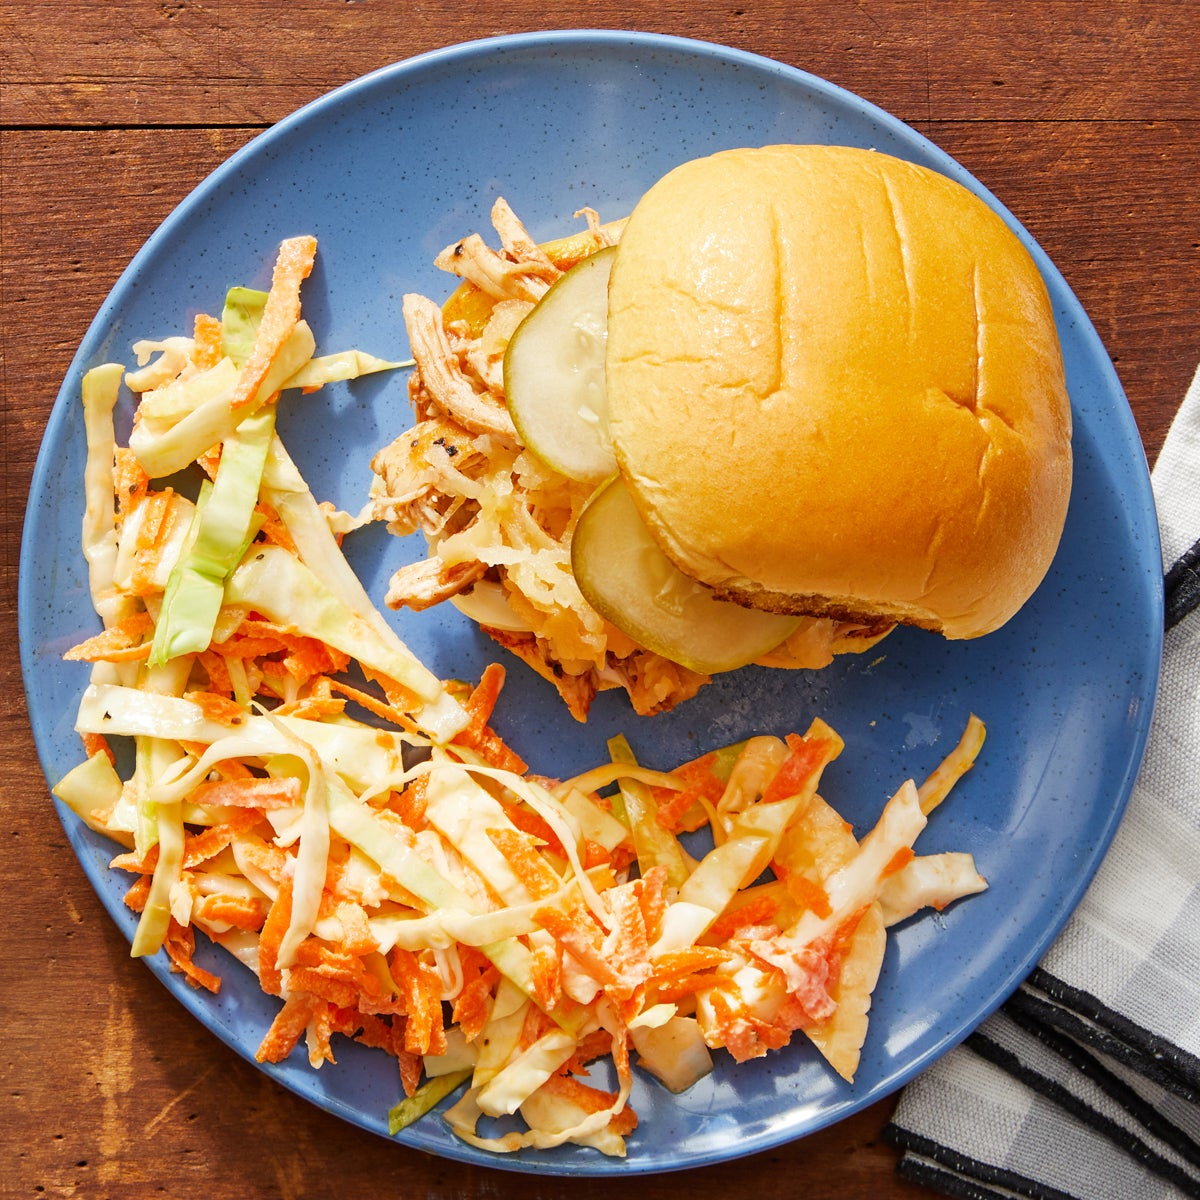 BBQ Chicken Sandwiches with Brown Sugar-Glazed Apple & Cabbage Slaw